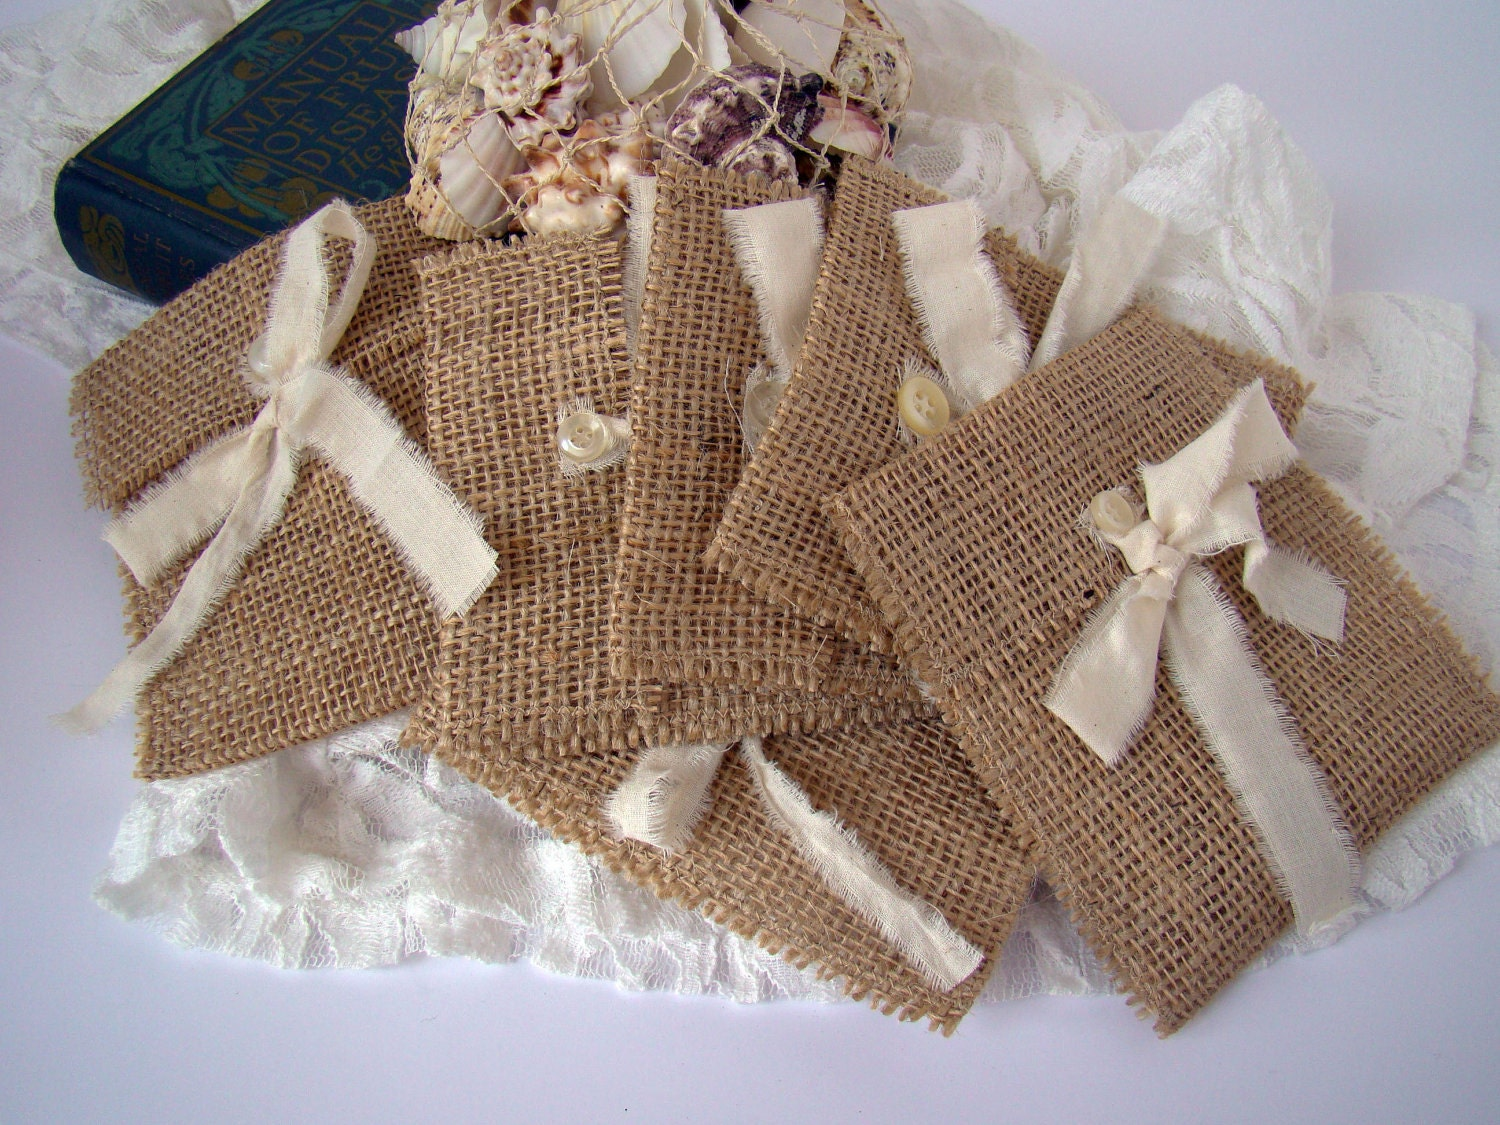 Rustic burlap wedding favor gift bag by twiningvines on etsy for Wedding favor gift bags